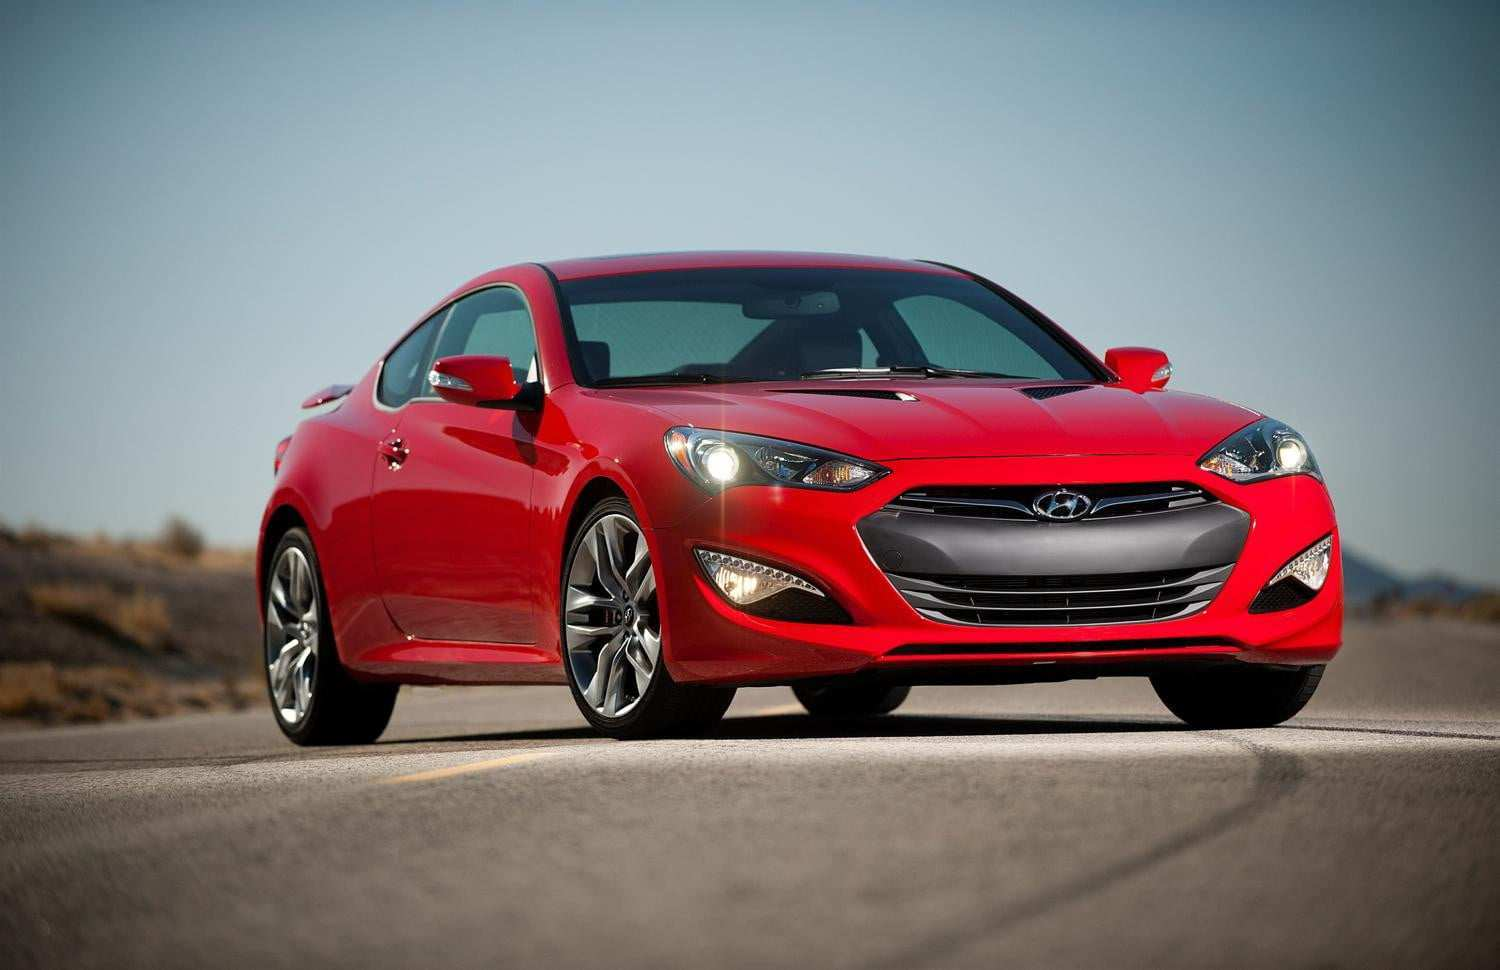 16 All New 2020 Hyundai Genesis Coupe V8 Price And Release Date